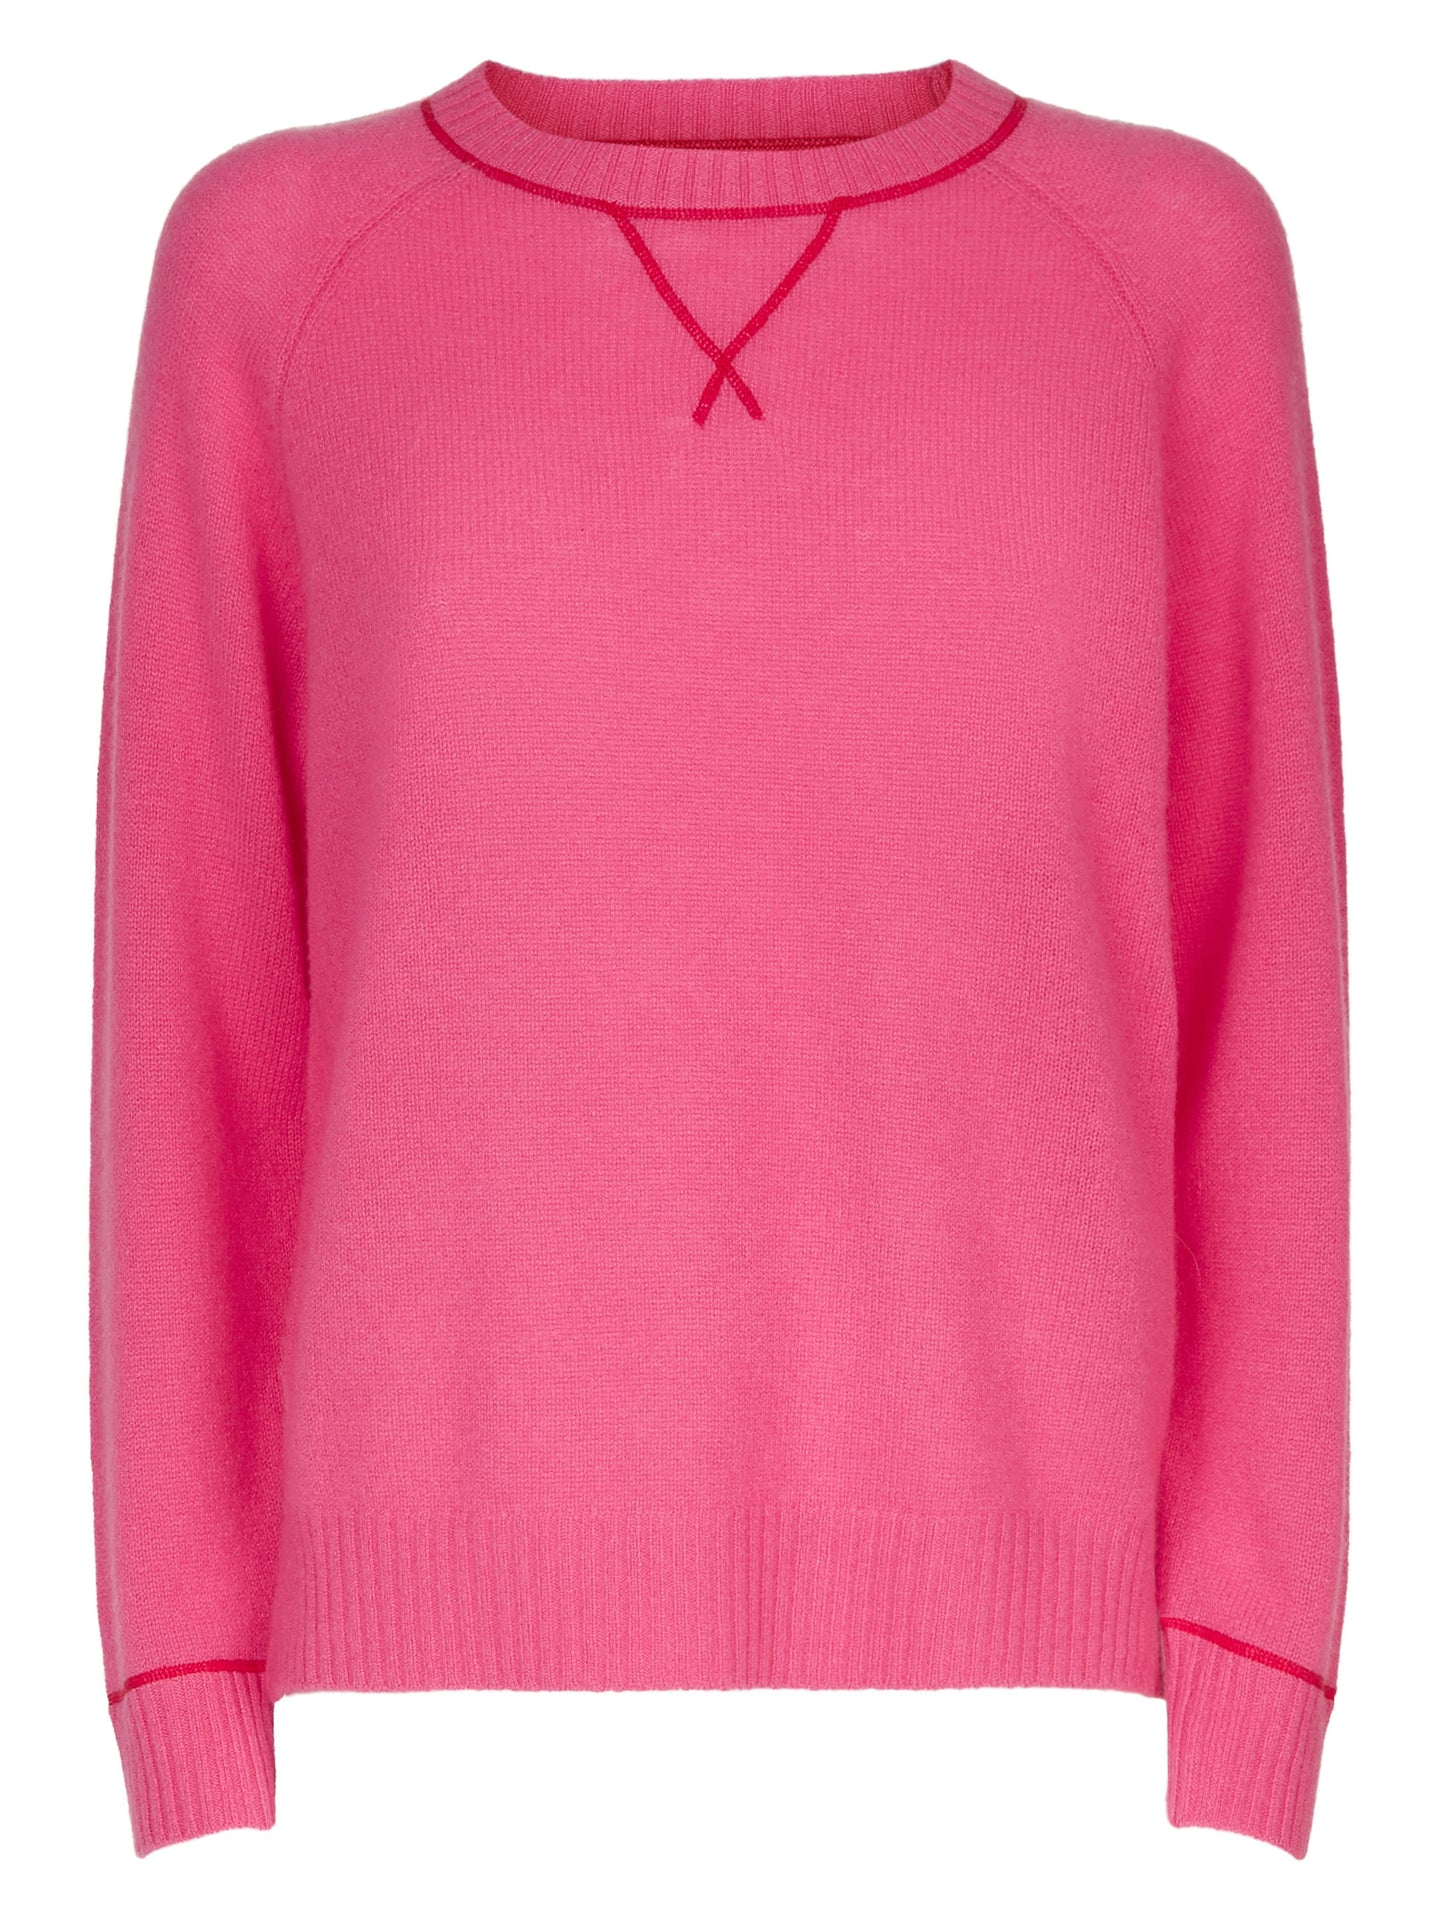 Sandra 100% Cashmere Jumper by NRBY